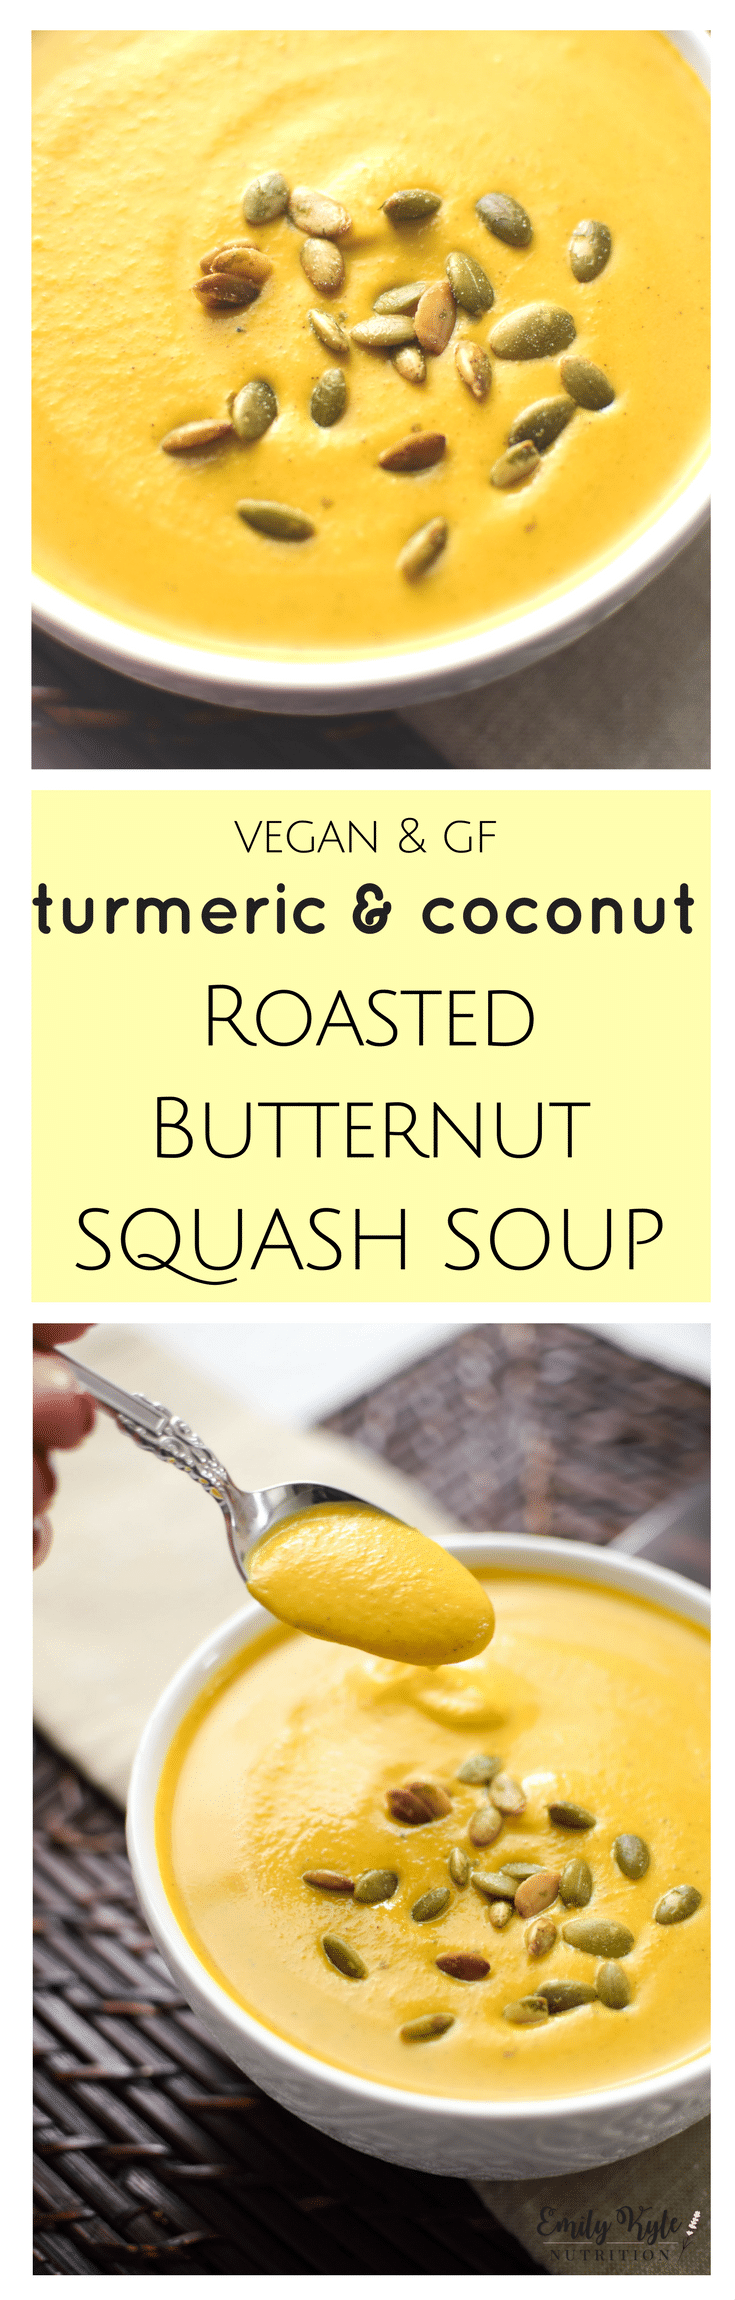 This smooth and creamy, vegan & gluten-free Turmeric & Coconut Roasted Butternut Squash Bisque is an antioxidant packed, anti-inflammatory one pot wonder the whole family will love!